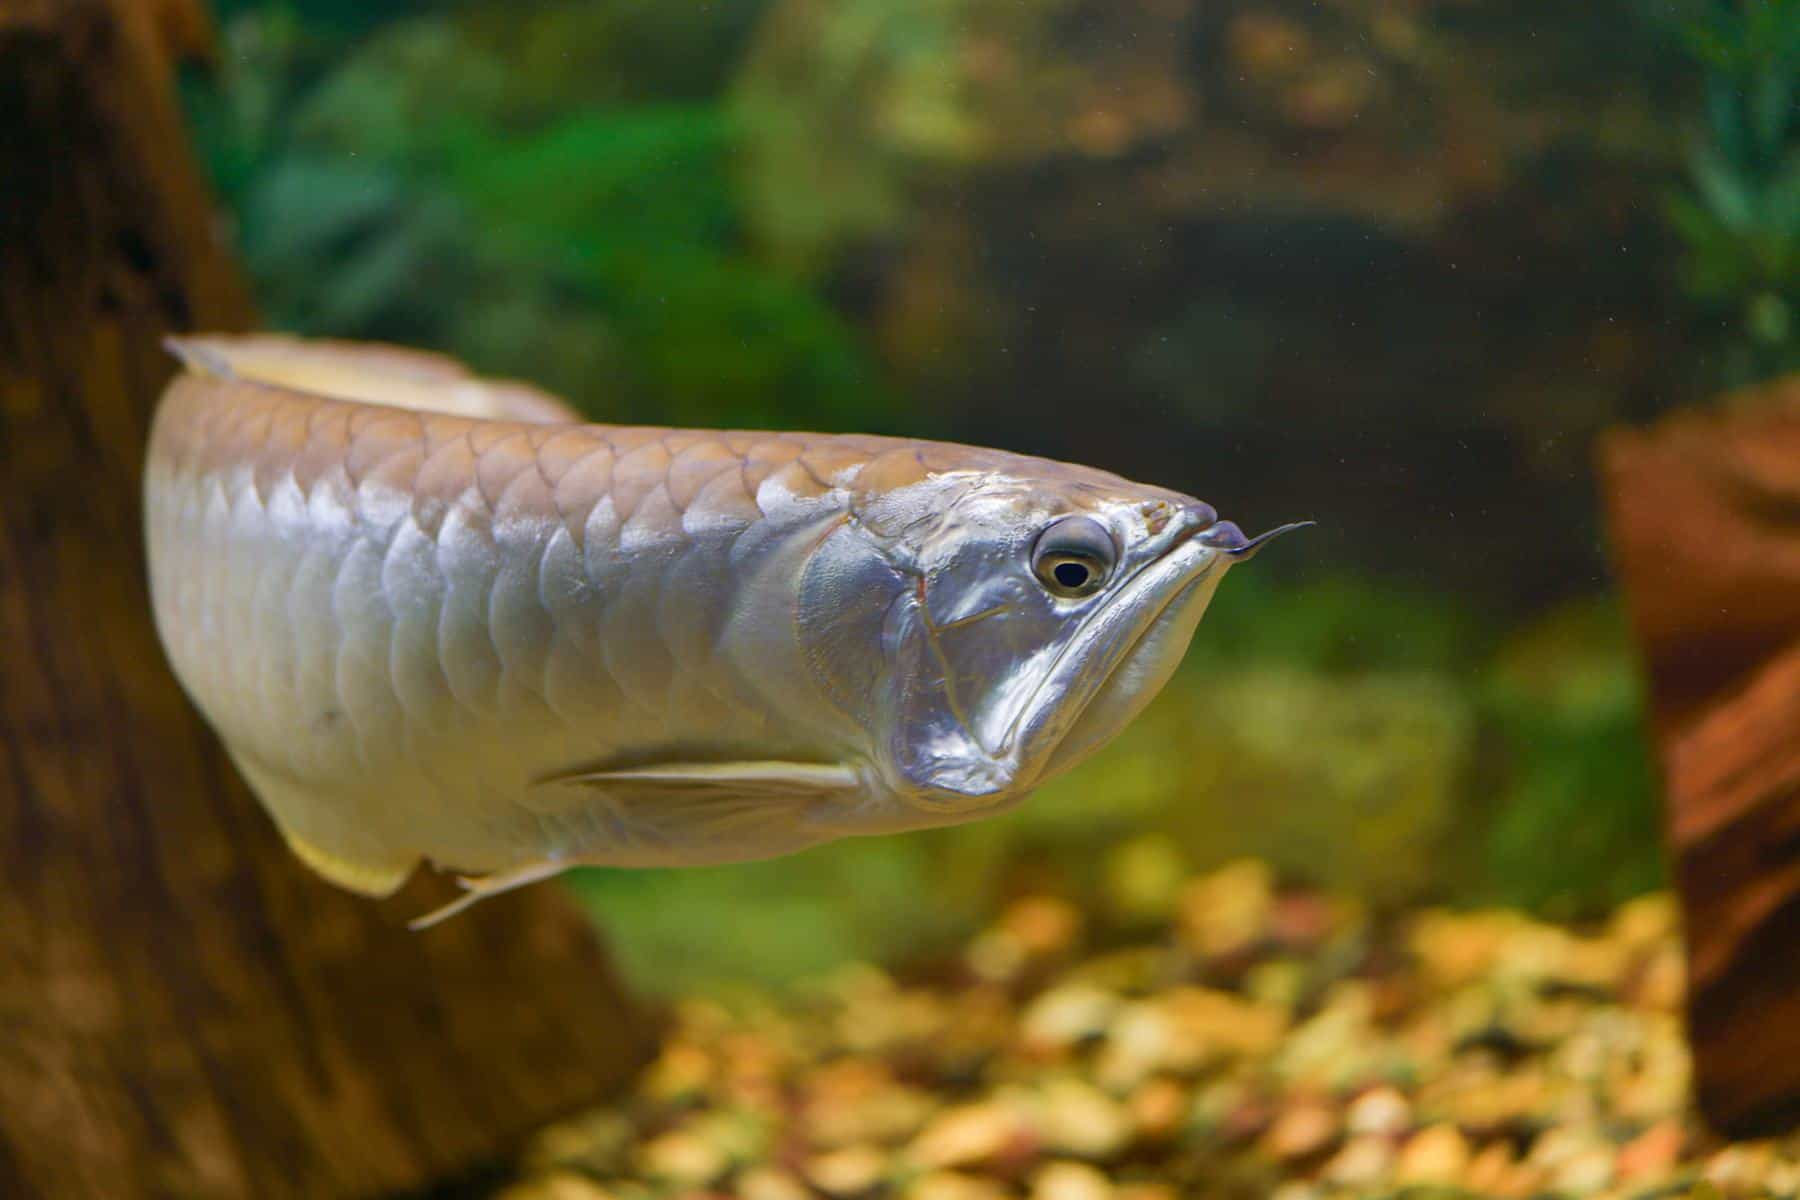 silver arowana fish swimming alone in tank